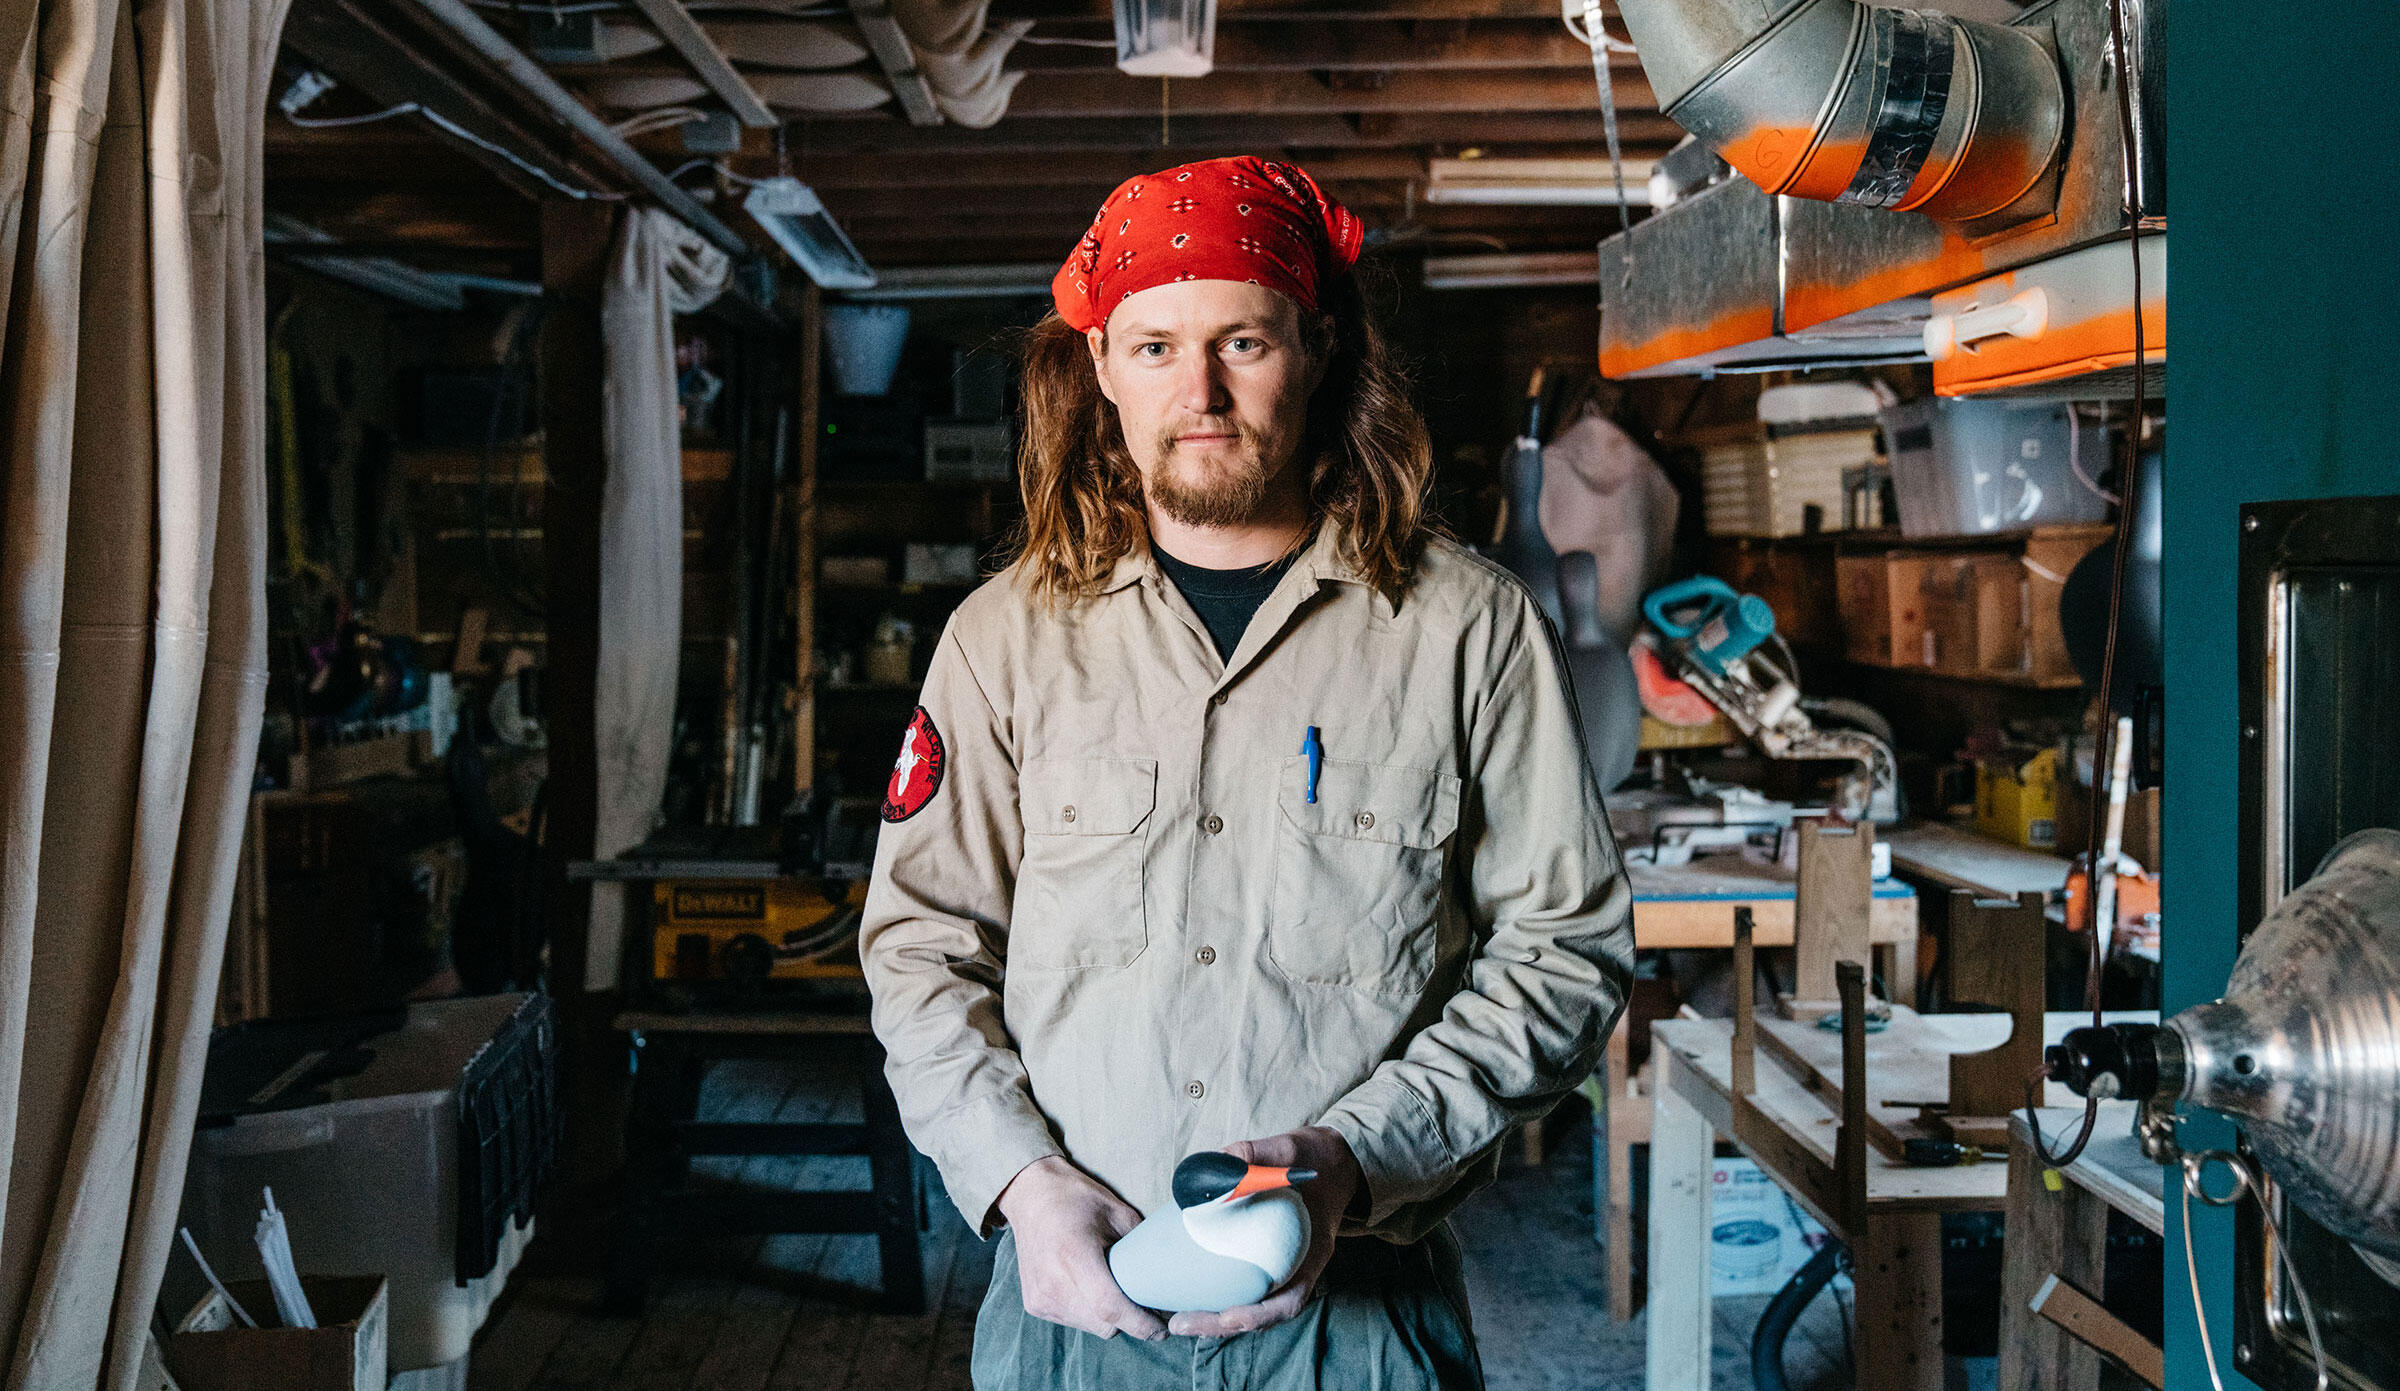 Eric Snyder, decoy production manager, in the National Audubon Society's production barn up the hill from the dock to Hog Island Audubon Camp in Bremen, Maine. Tristan Spinski